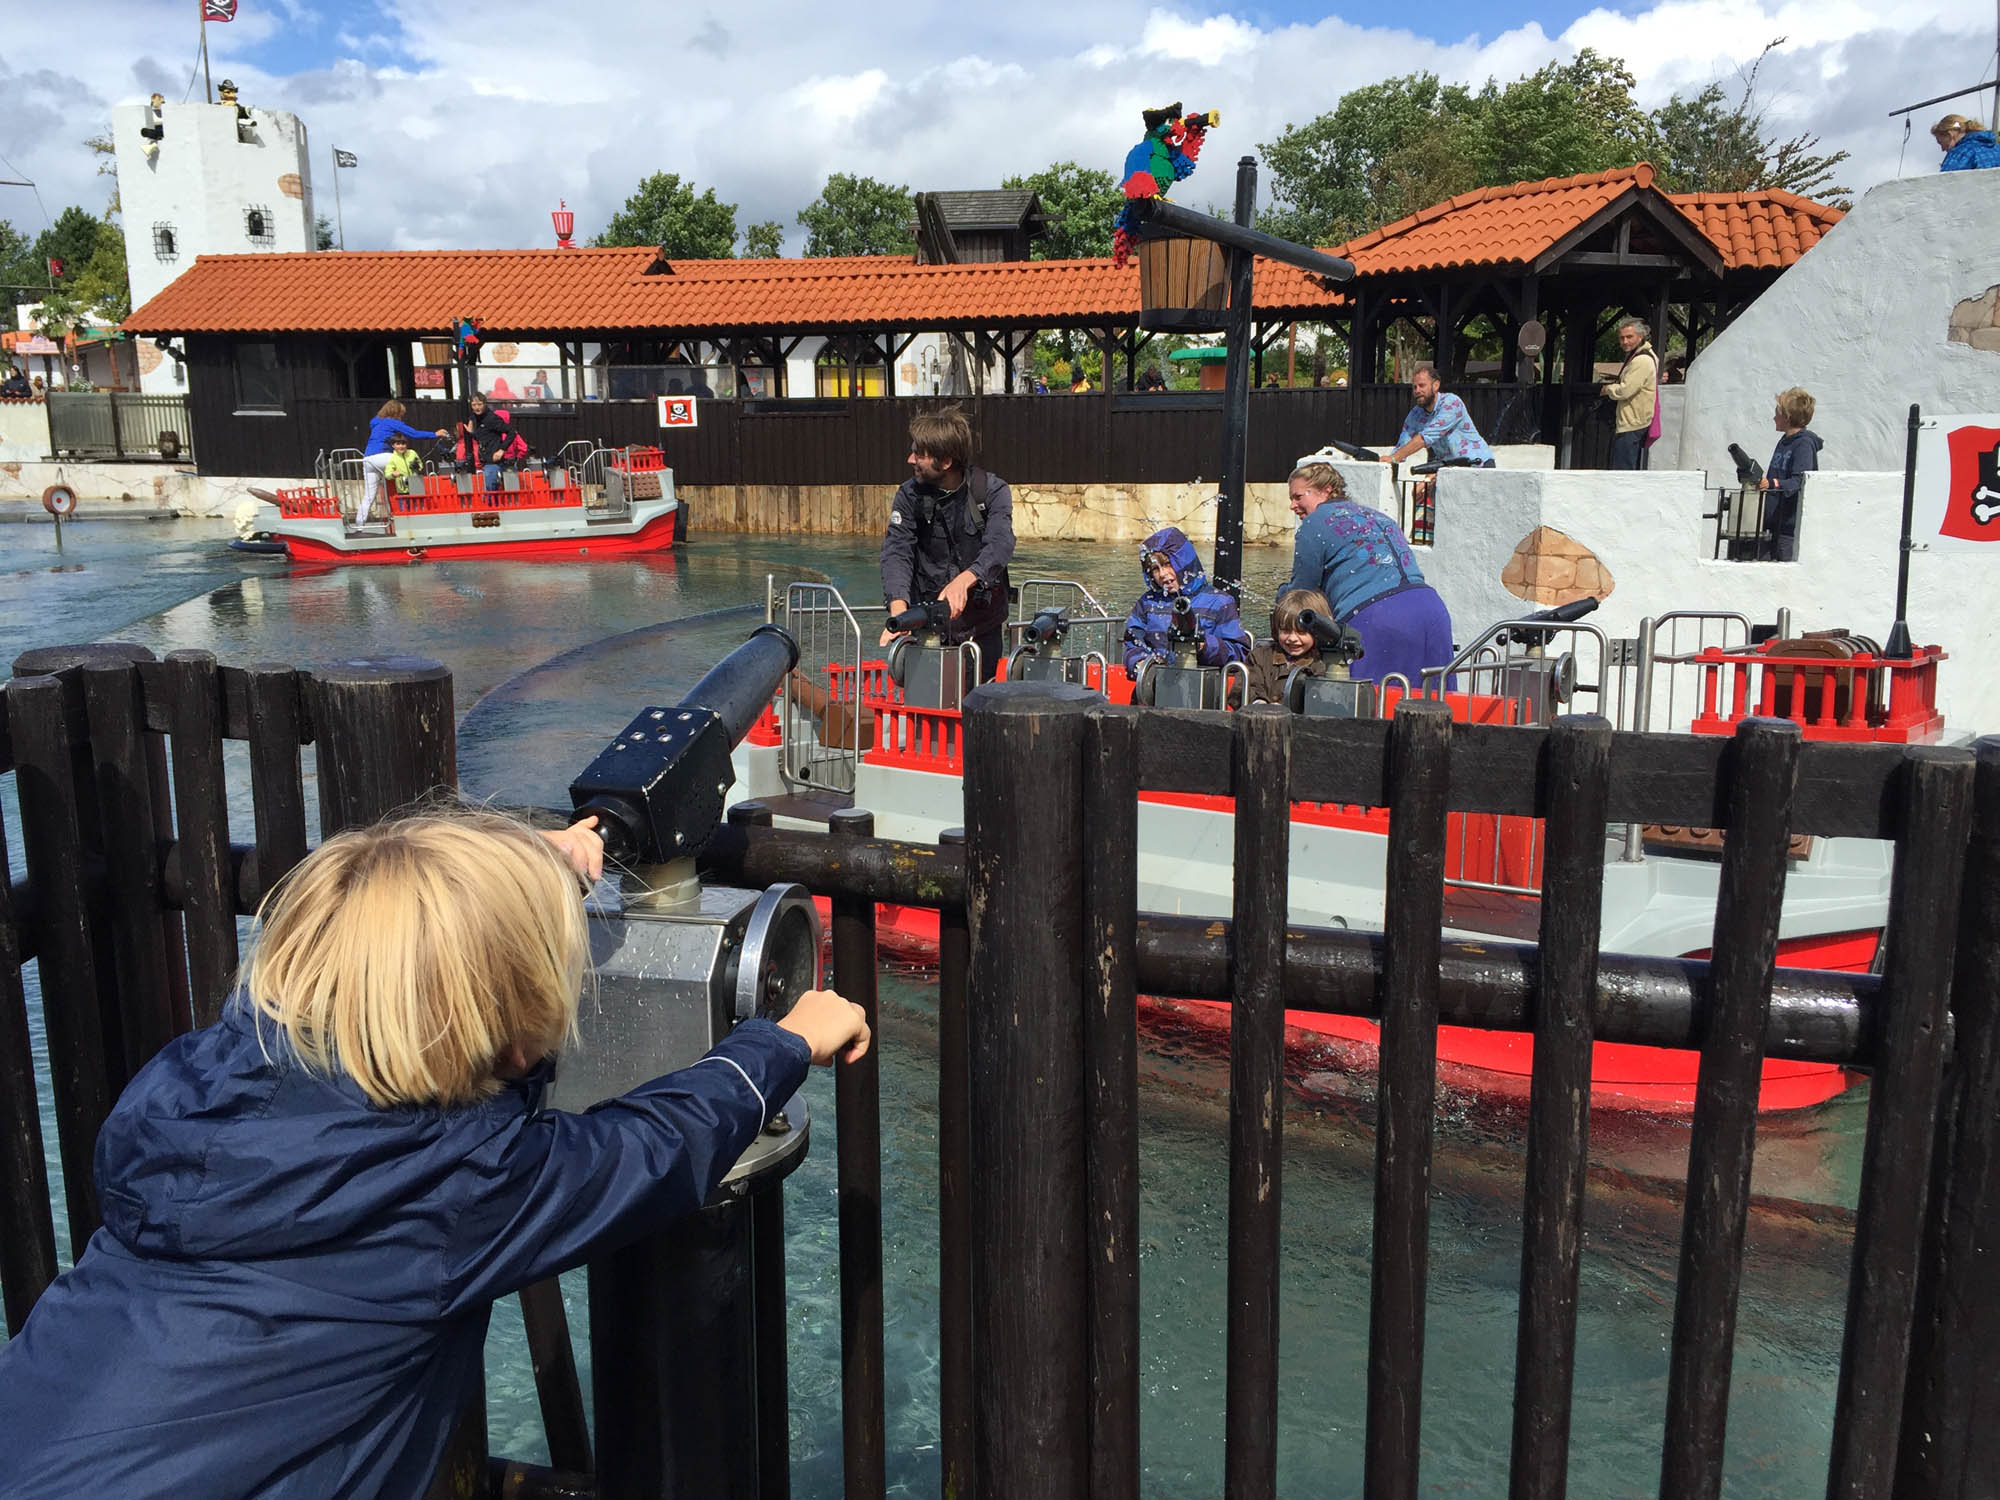 Pirate Water Falls Legoland Billund